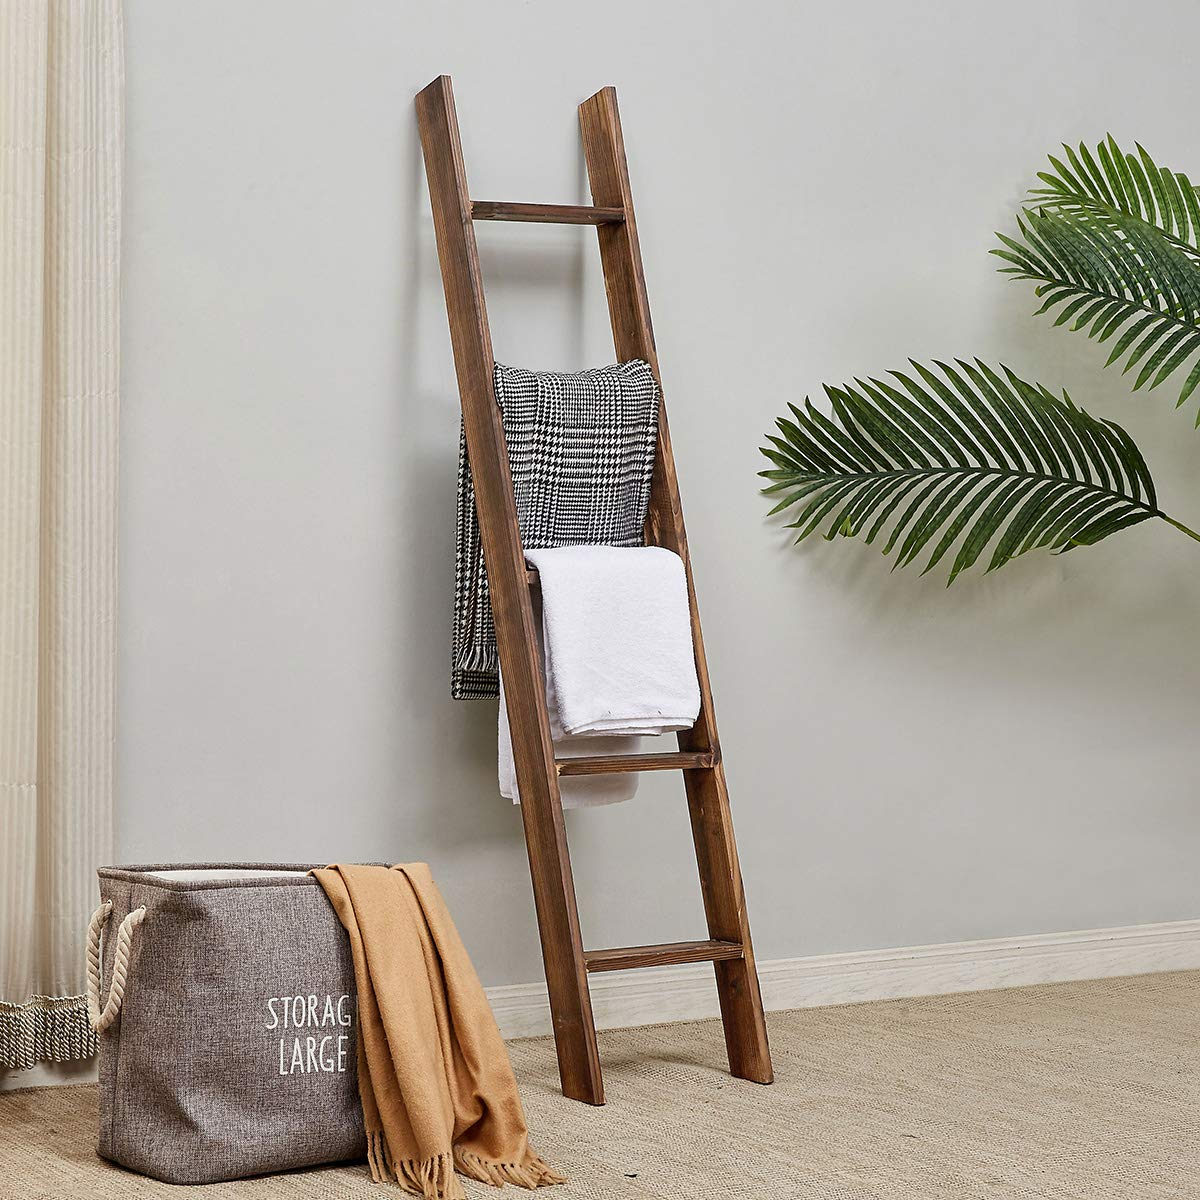 RHF Rustic Farmhouse Blanket Ladders,Wall Leaning Decorative Blanket Ladder,Rustic Wood 5ft Blanket Ladders, Blanket Quilt Rack Stand for Living Room, Ladder Decor,No Assembly Required 5-Feet, Brown by Rose Home Fashion